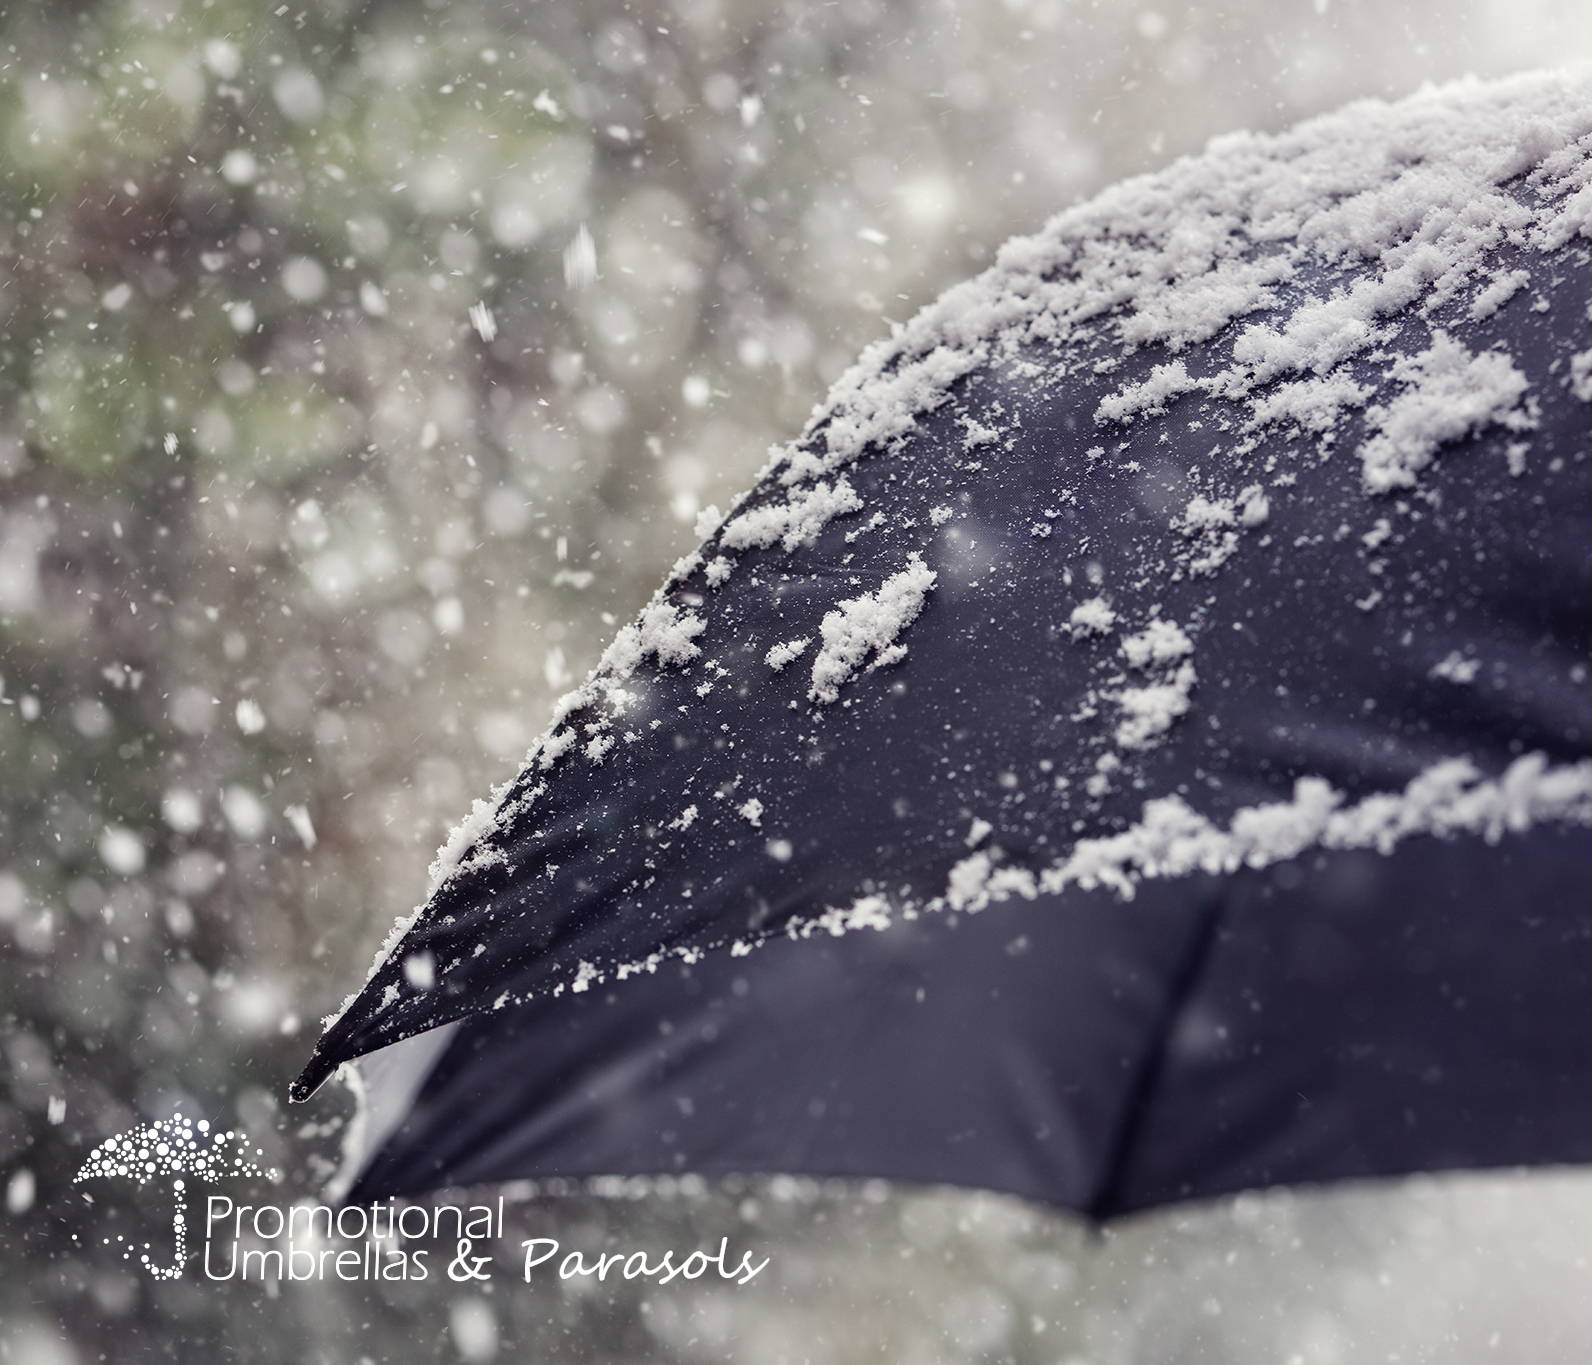 Upgrade your umbrella game this winter with Promotional Umbrellas